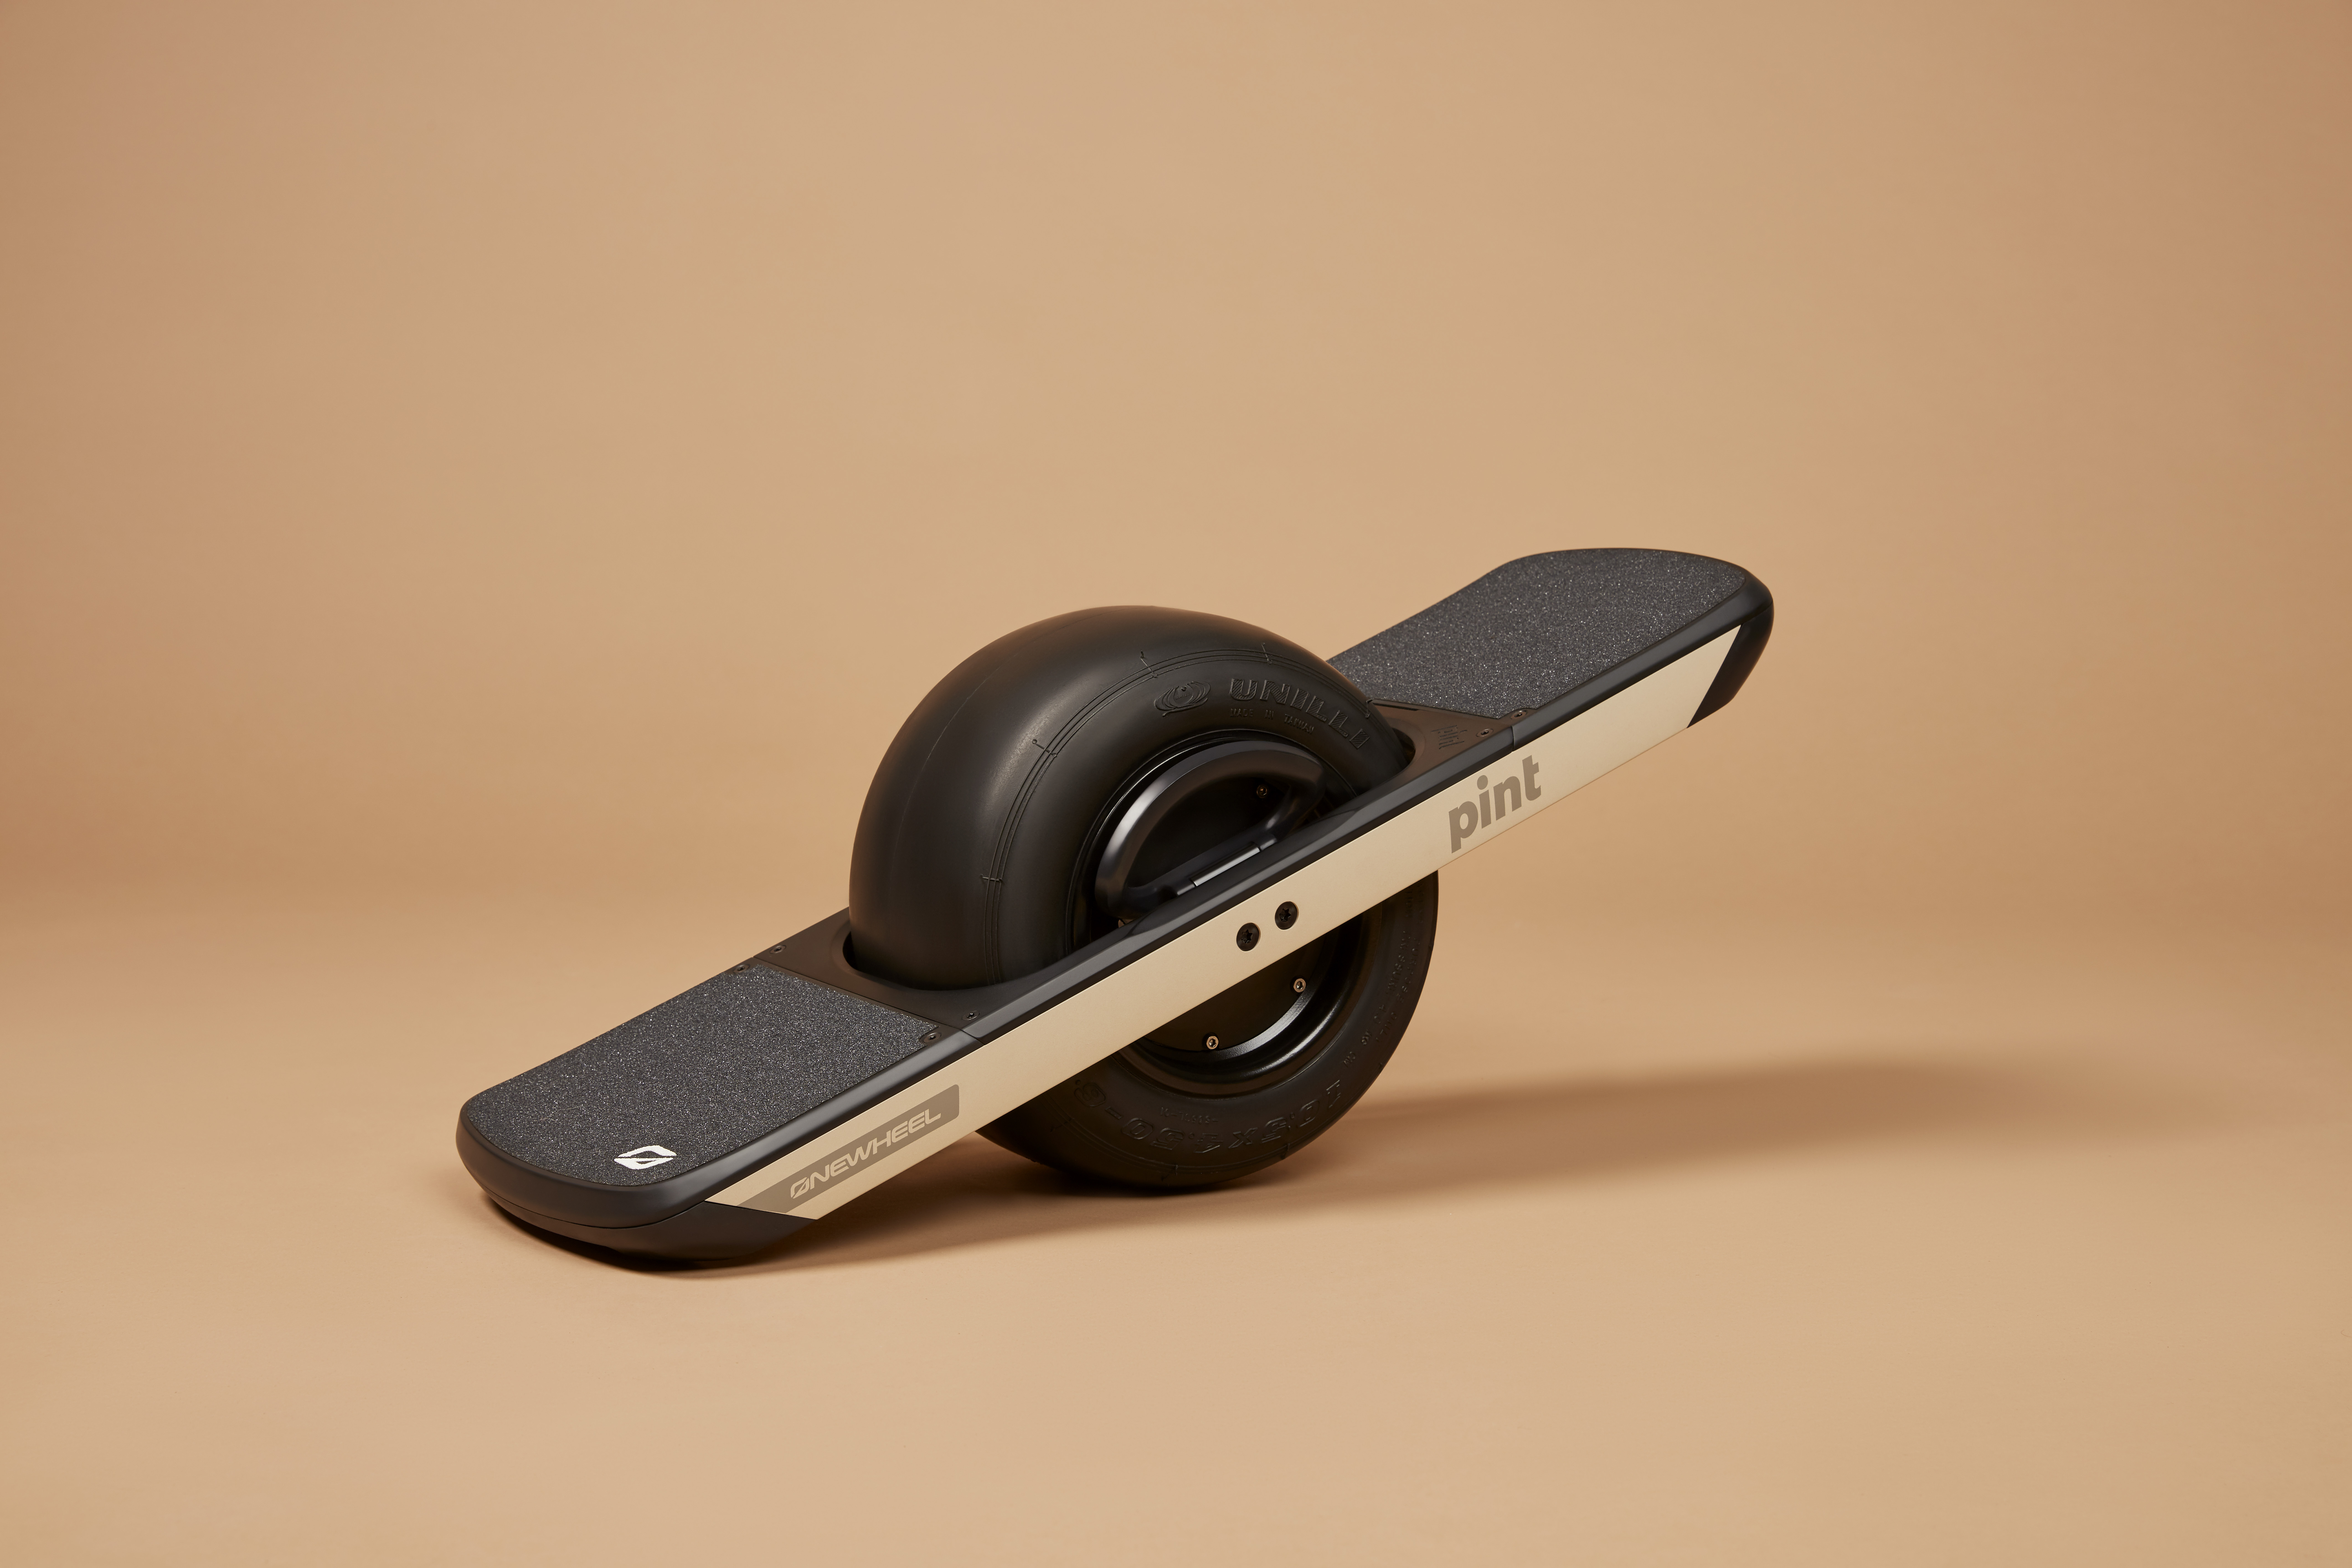 Get your Onewheel in Duluth today!